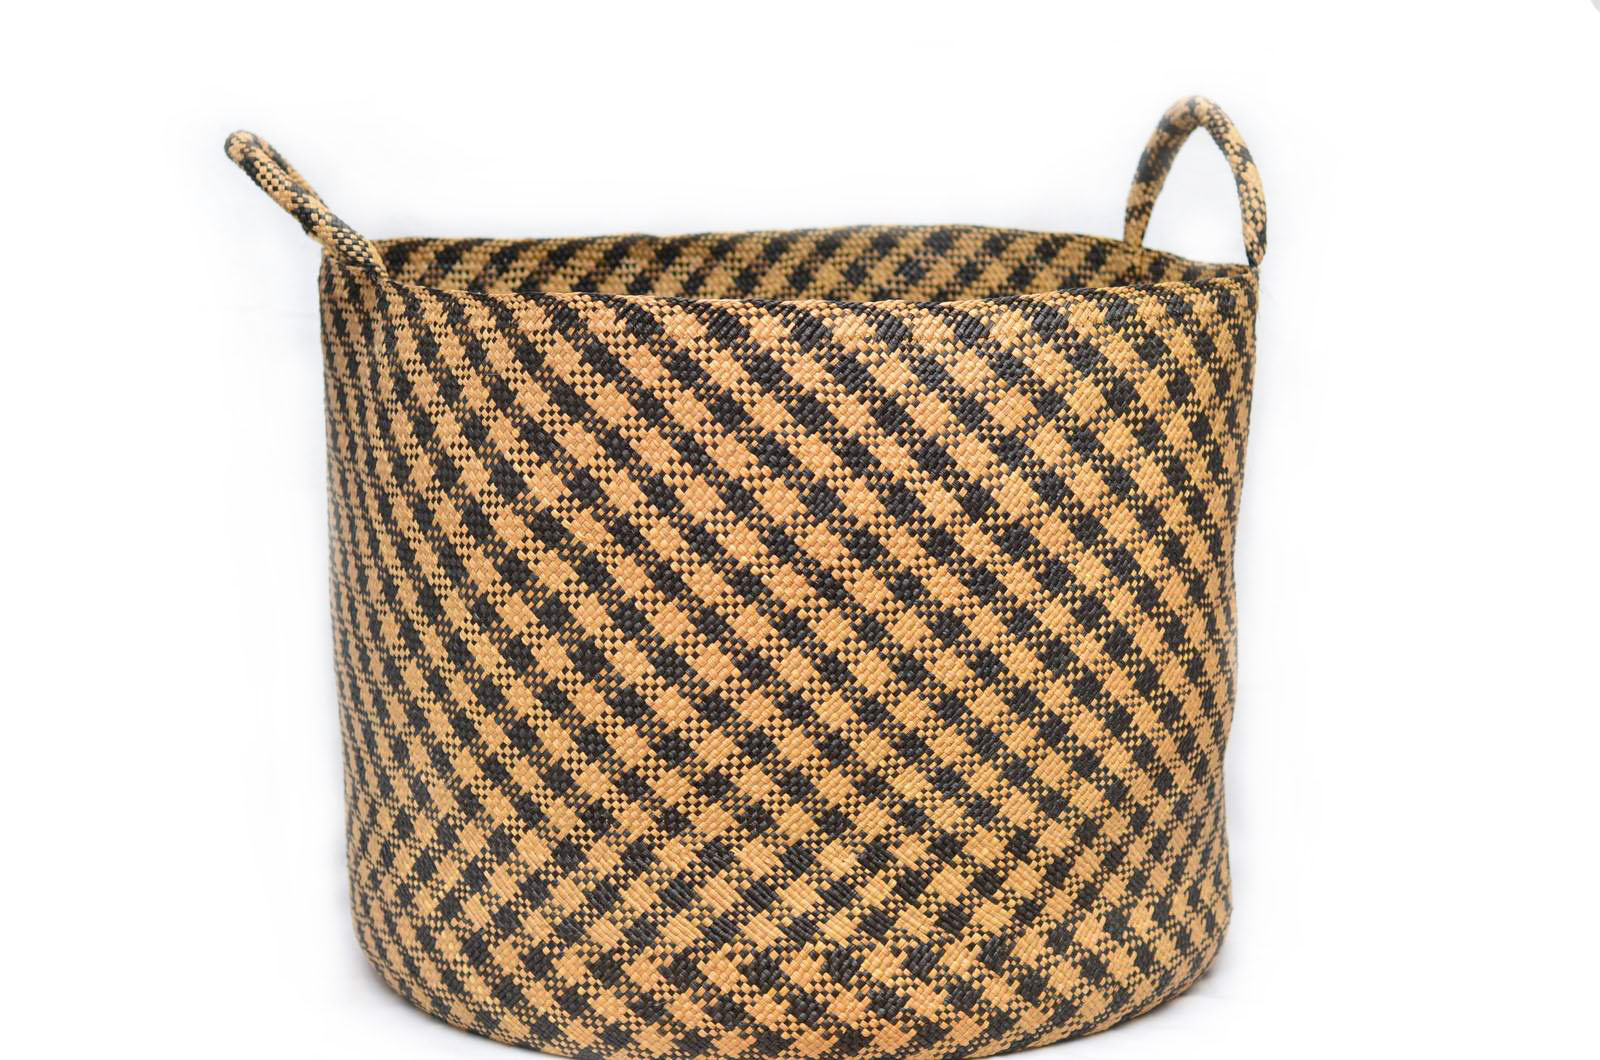 Large Woven Basket w/ Handles in Tan Iraca with Black Stripes